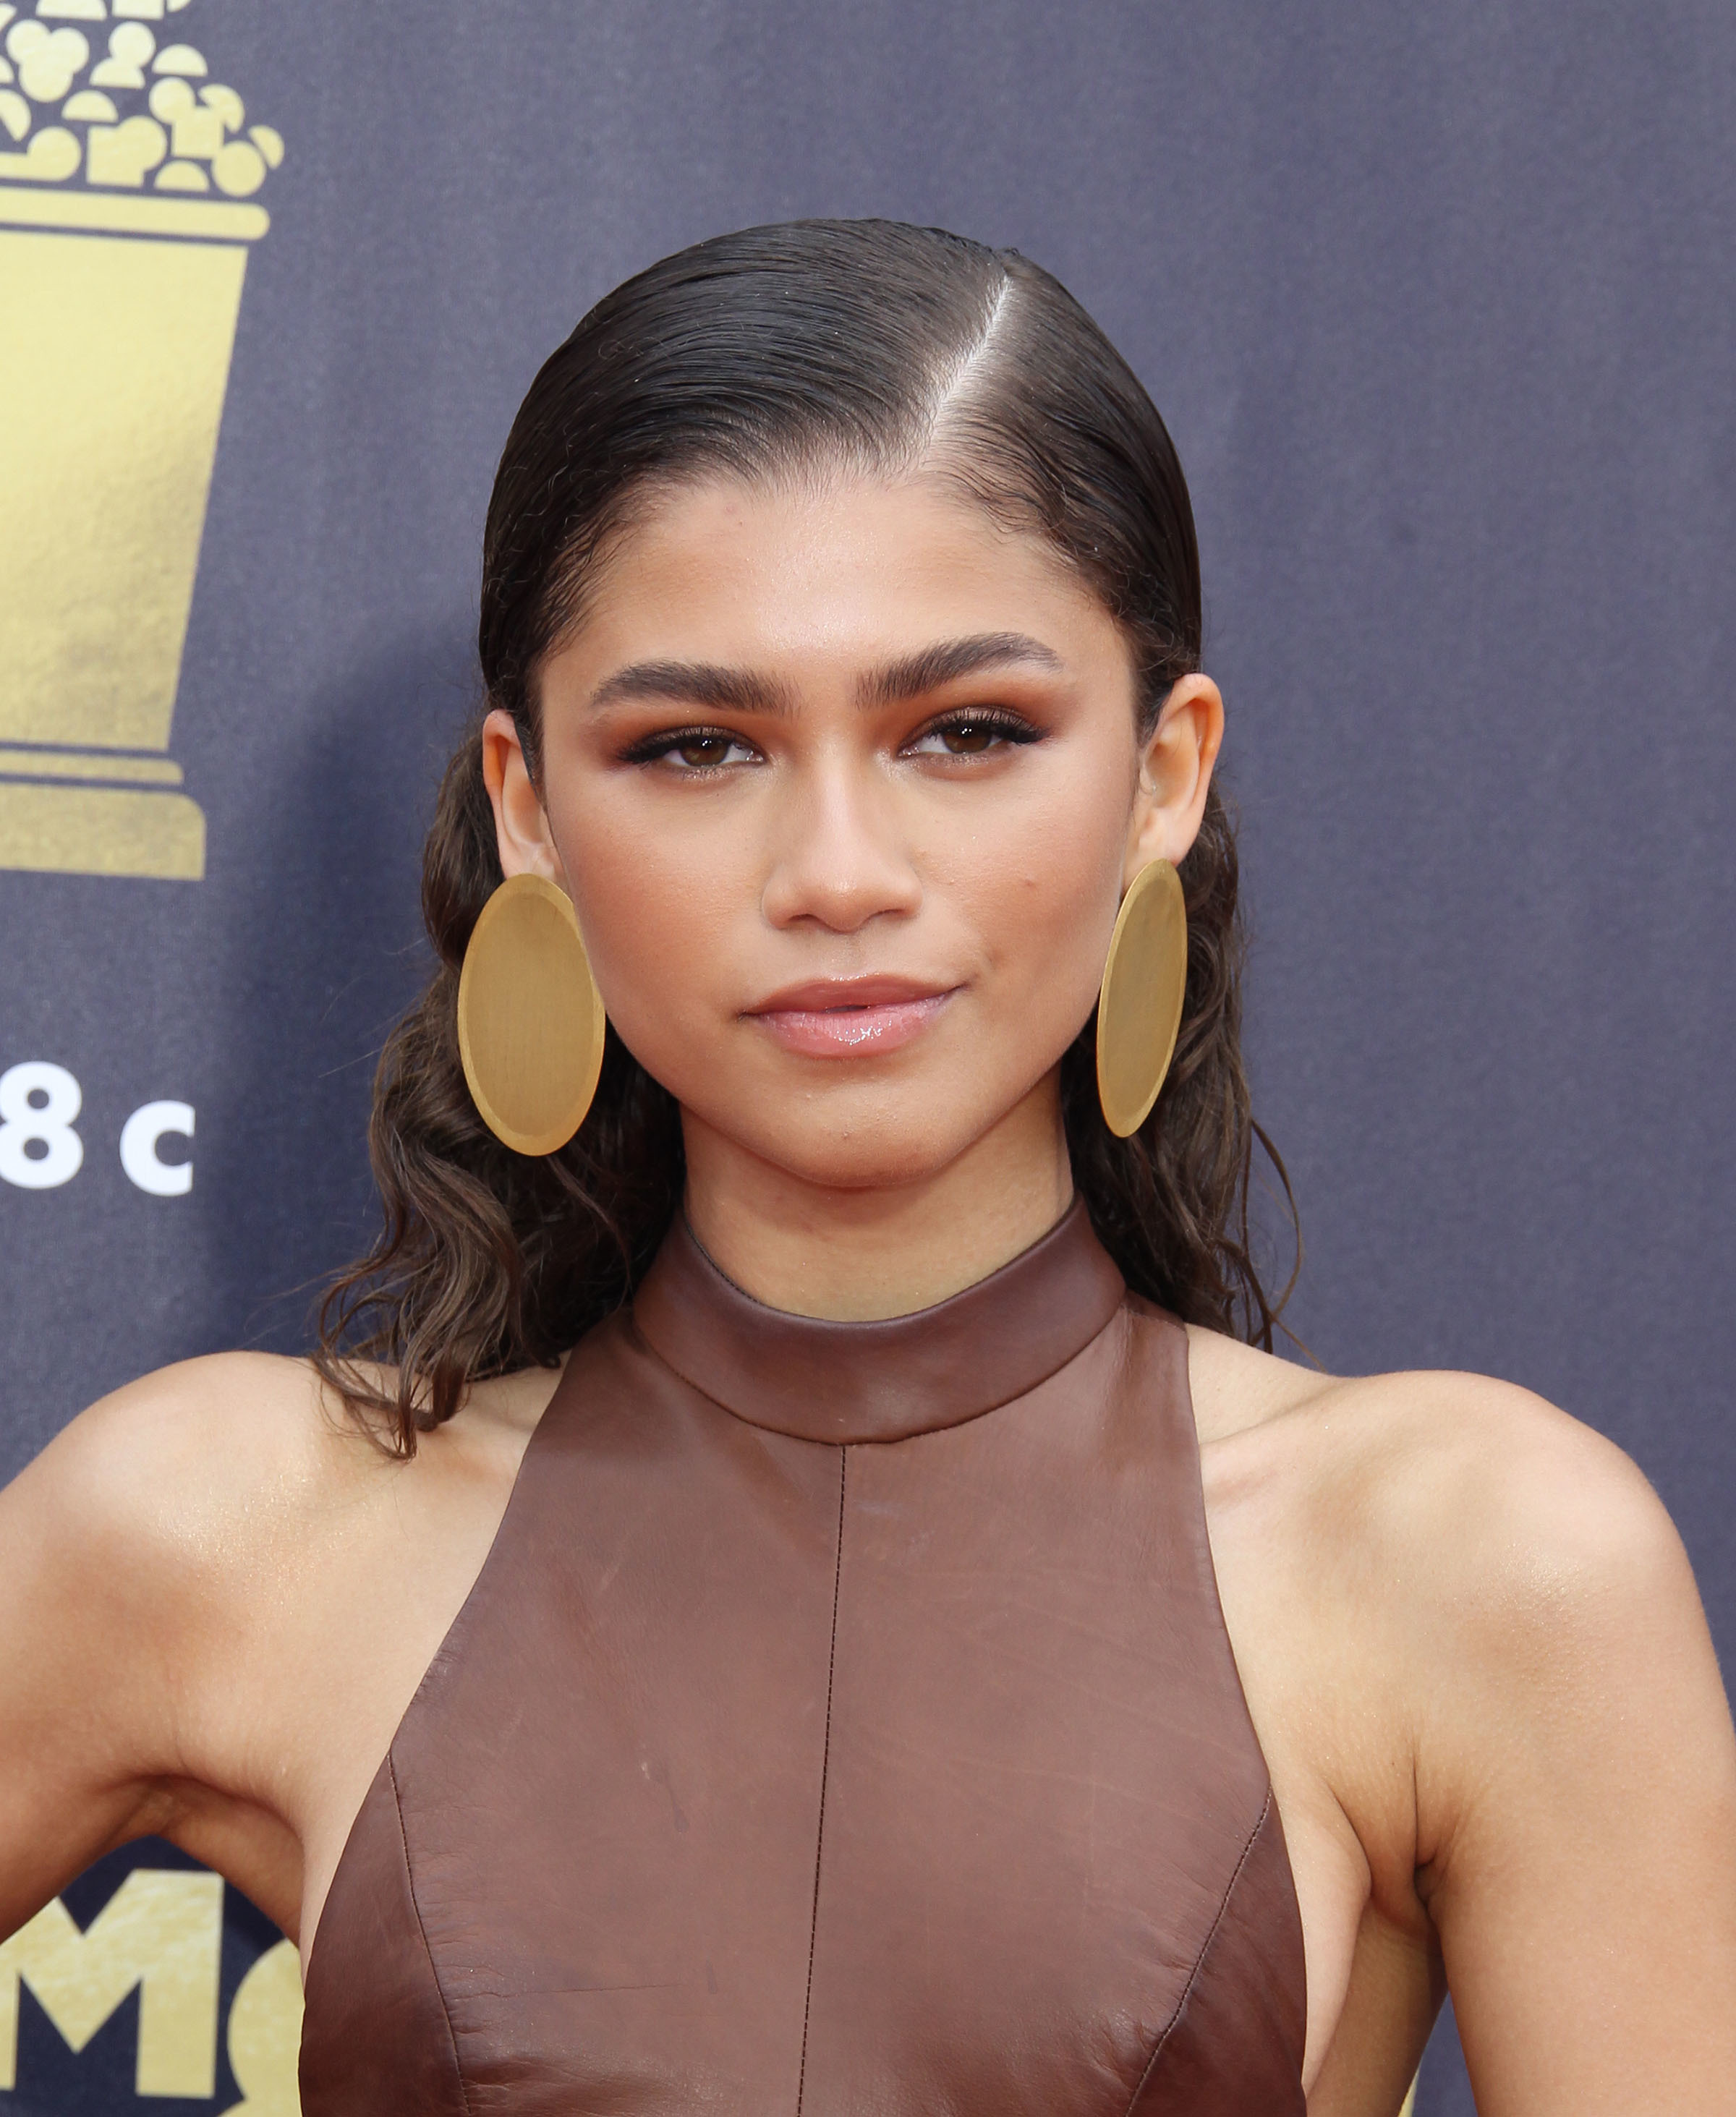 Zendaya attends the MTV Movie & TV Awards in Los Angeles on June 16, 2018.